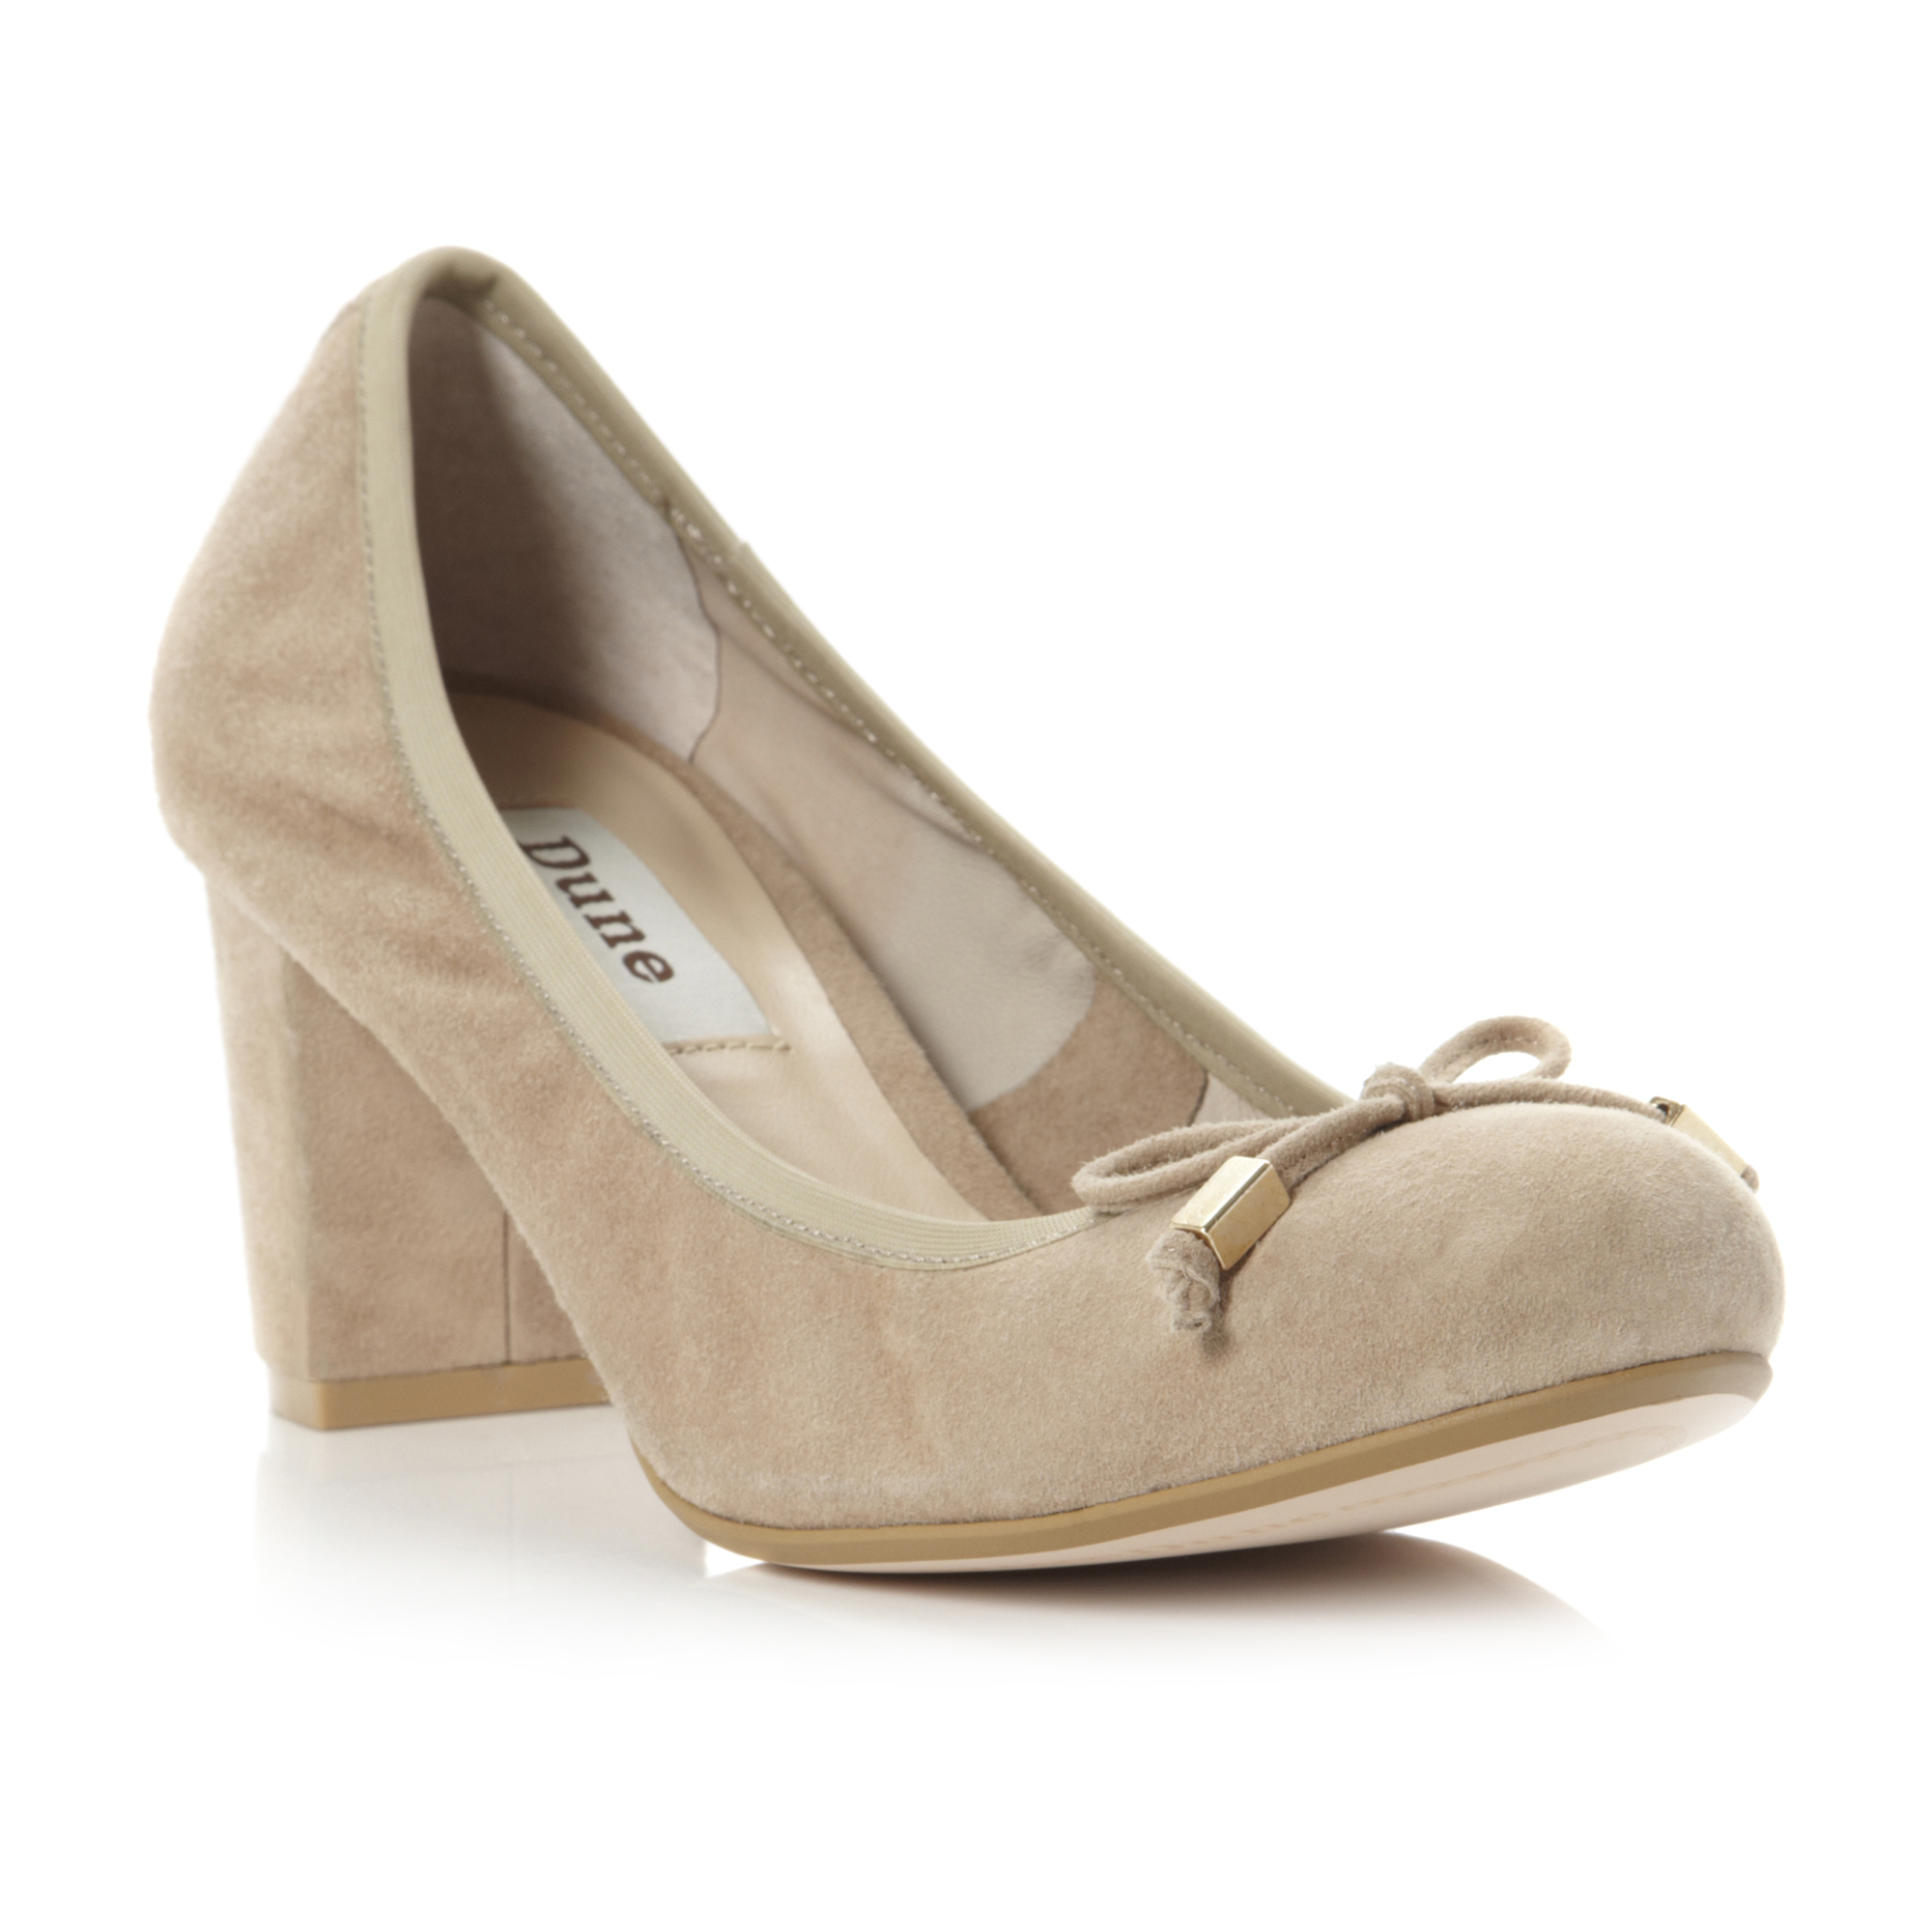 NEW-DUNE-LADIES-ACTIVE-WOMENS-NUDE-SUEDE-MID-BLOCK-HEEL-COURT-SHOES-SIZE-3-8-UK